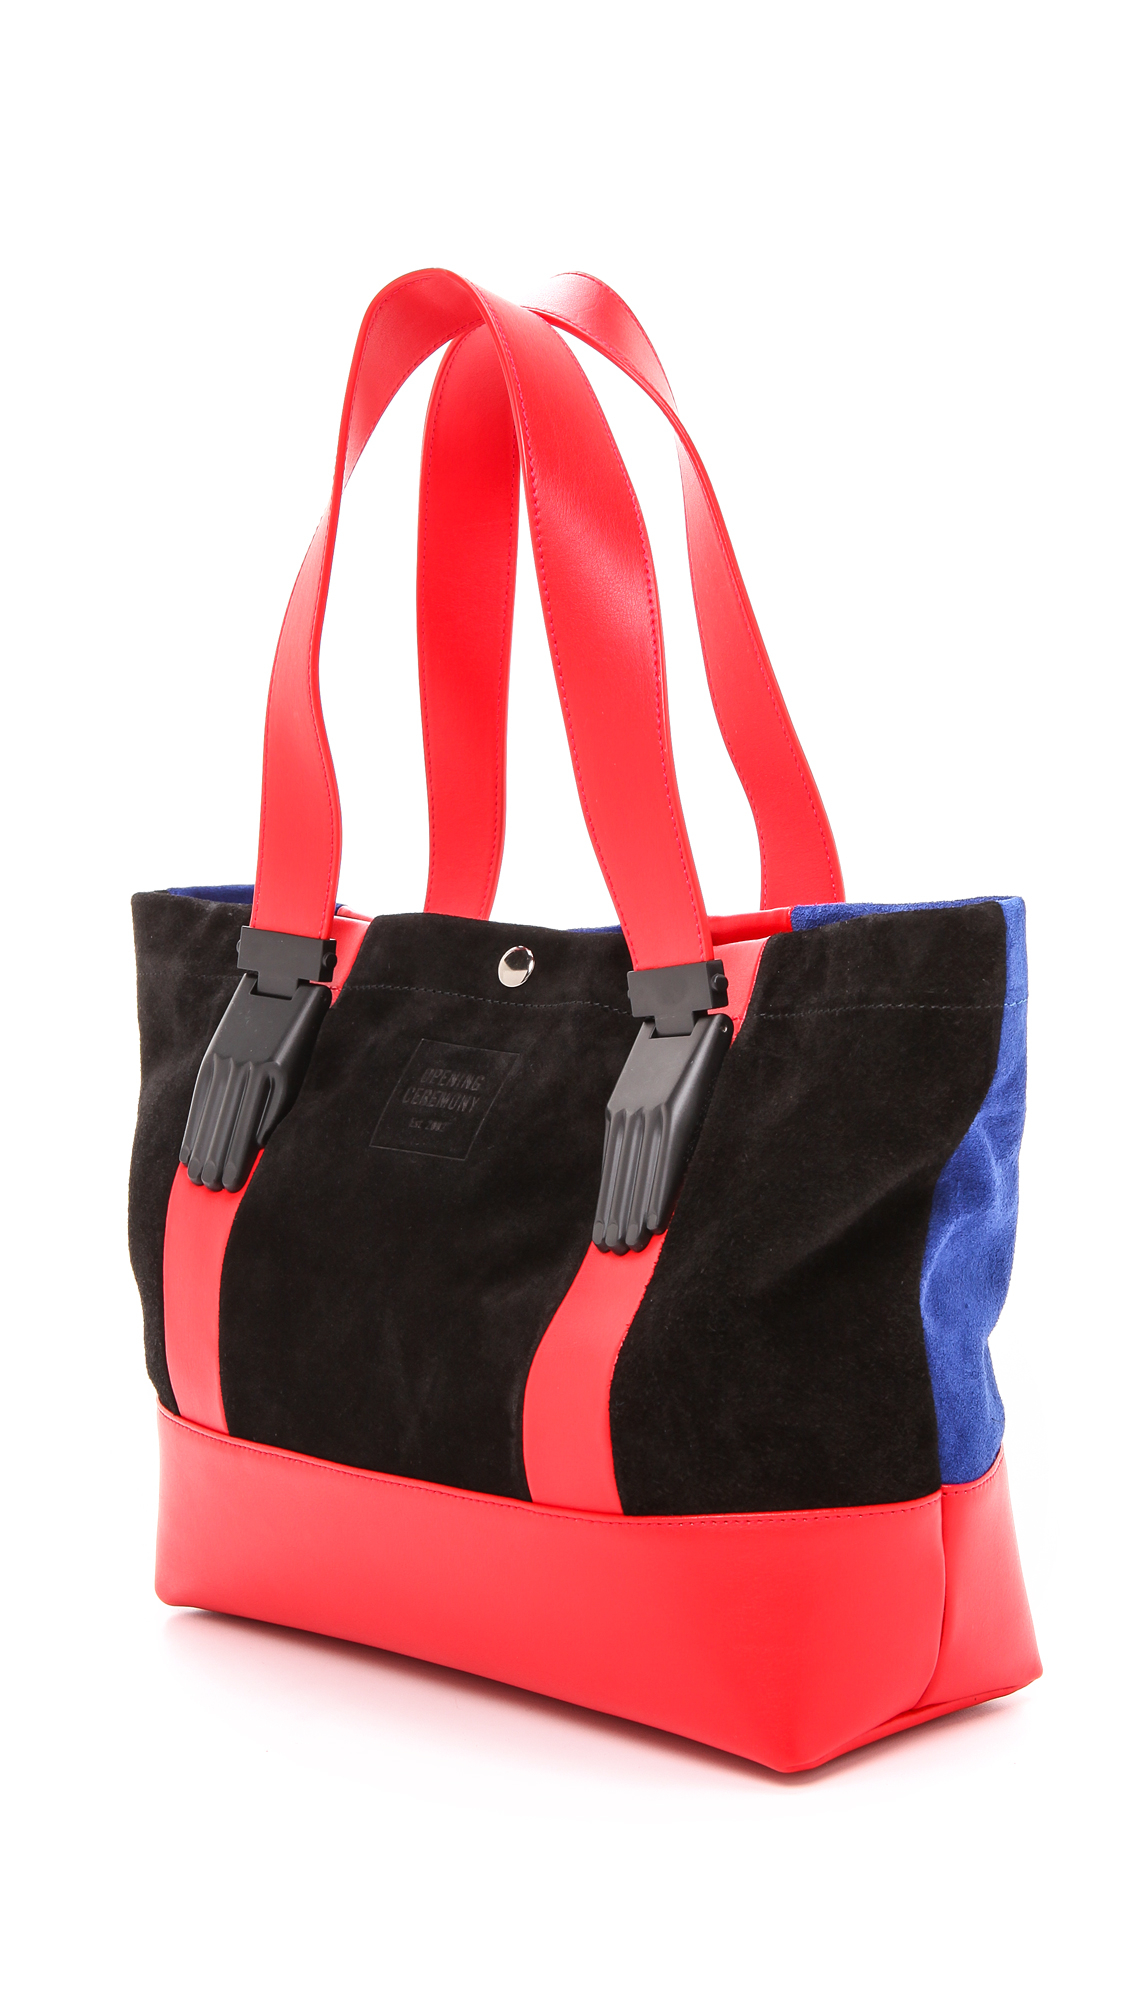 Opening Ceremony Millie Small Tote - Cobalt Multi in Red